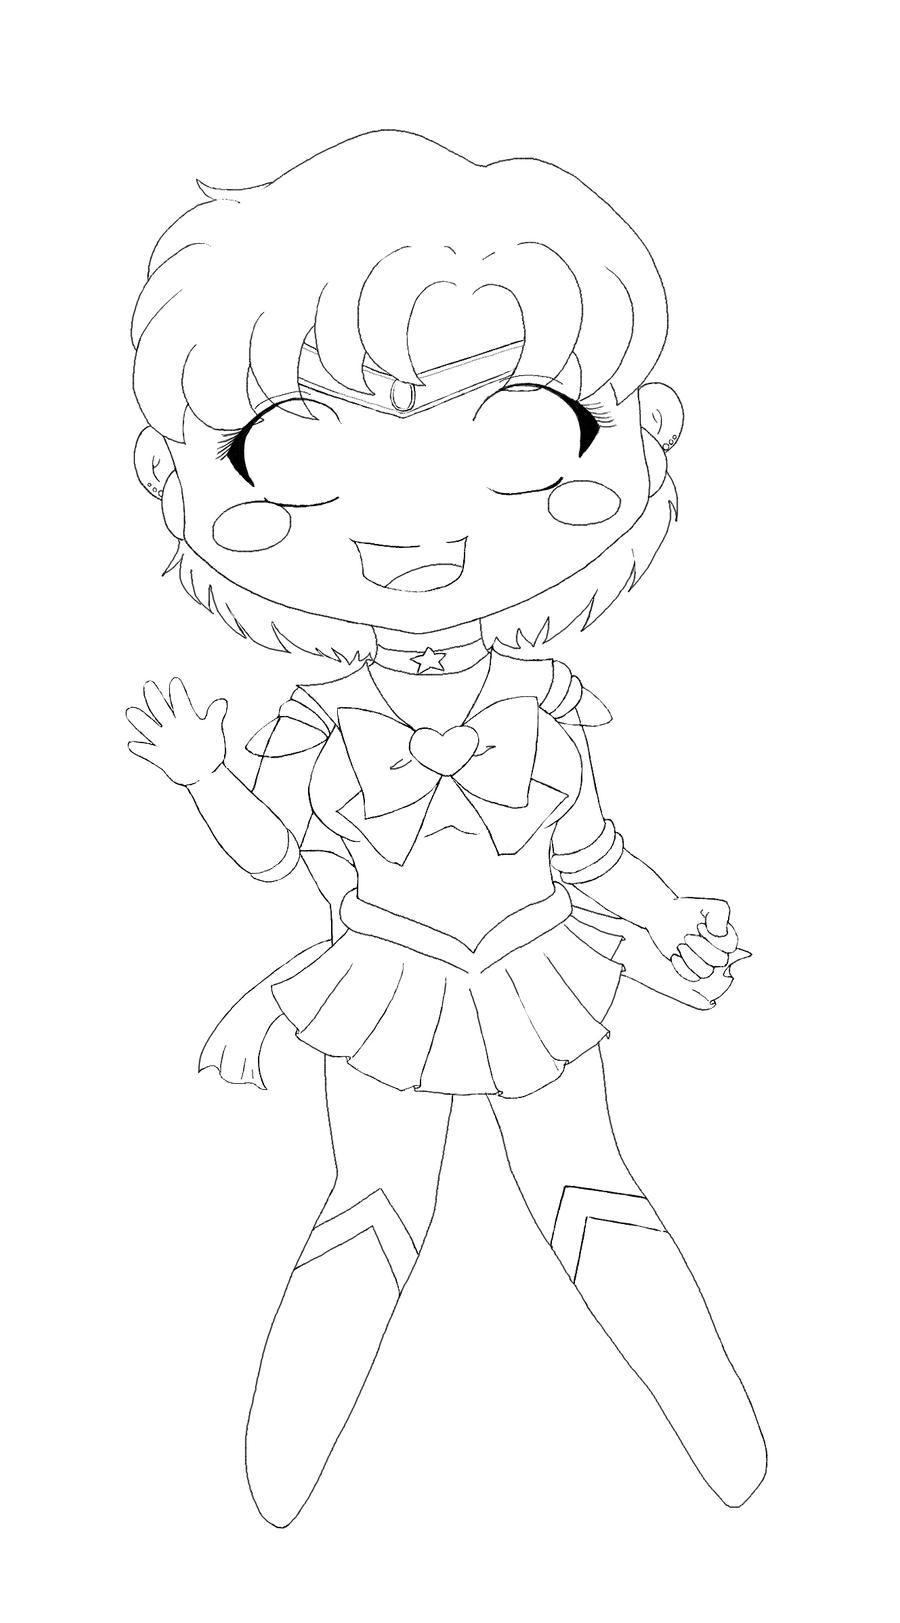 chibi sailor mercury by tarynerhedey on deviantart